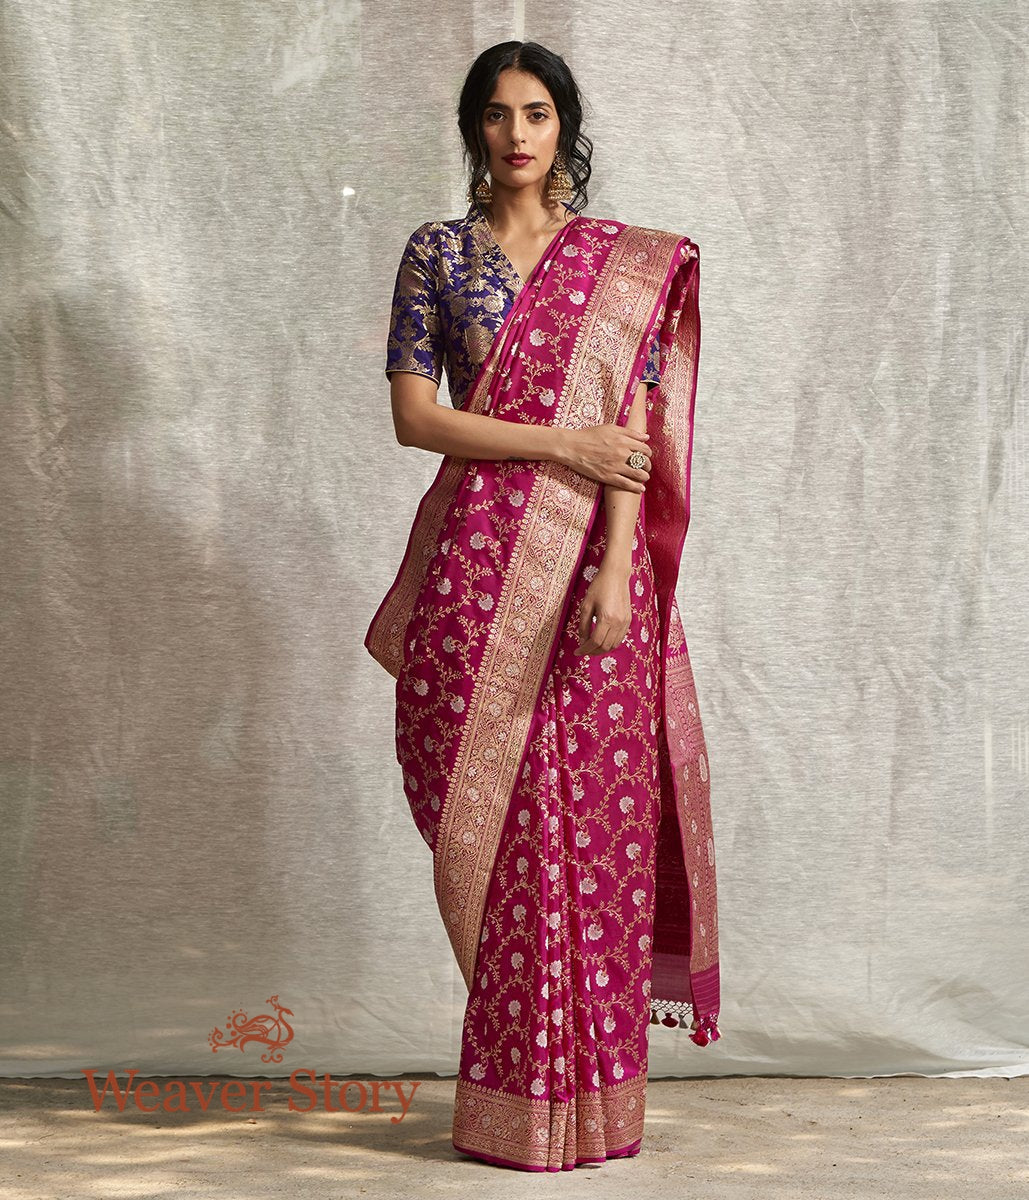 Handwoven Pink Sona Rupa Kadhwa Jangla Saree with All Over Floral Weave